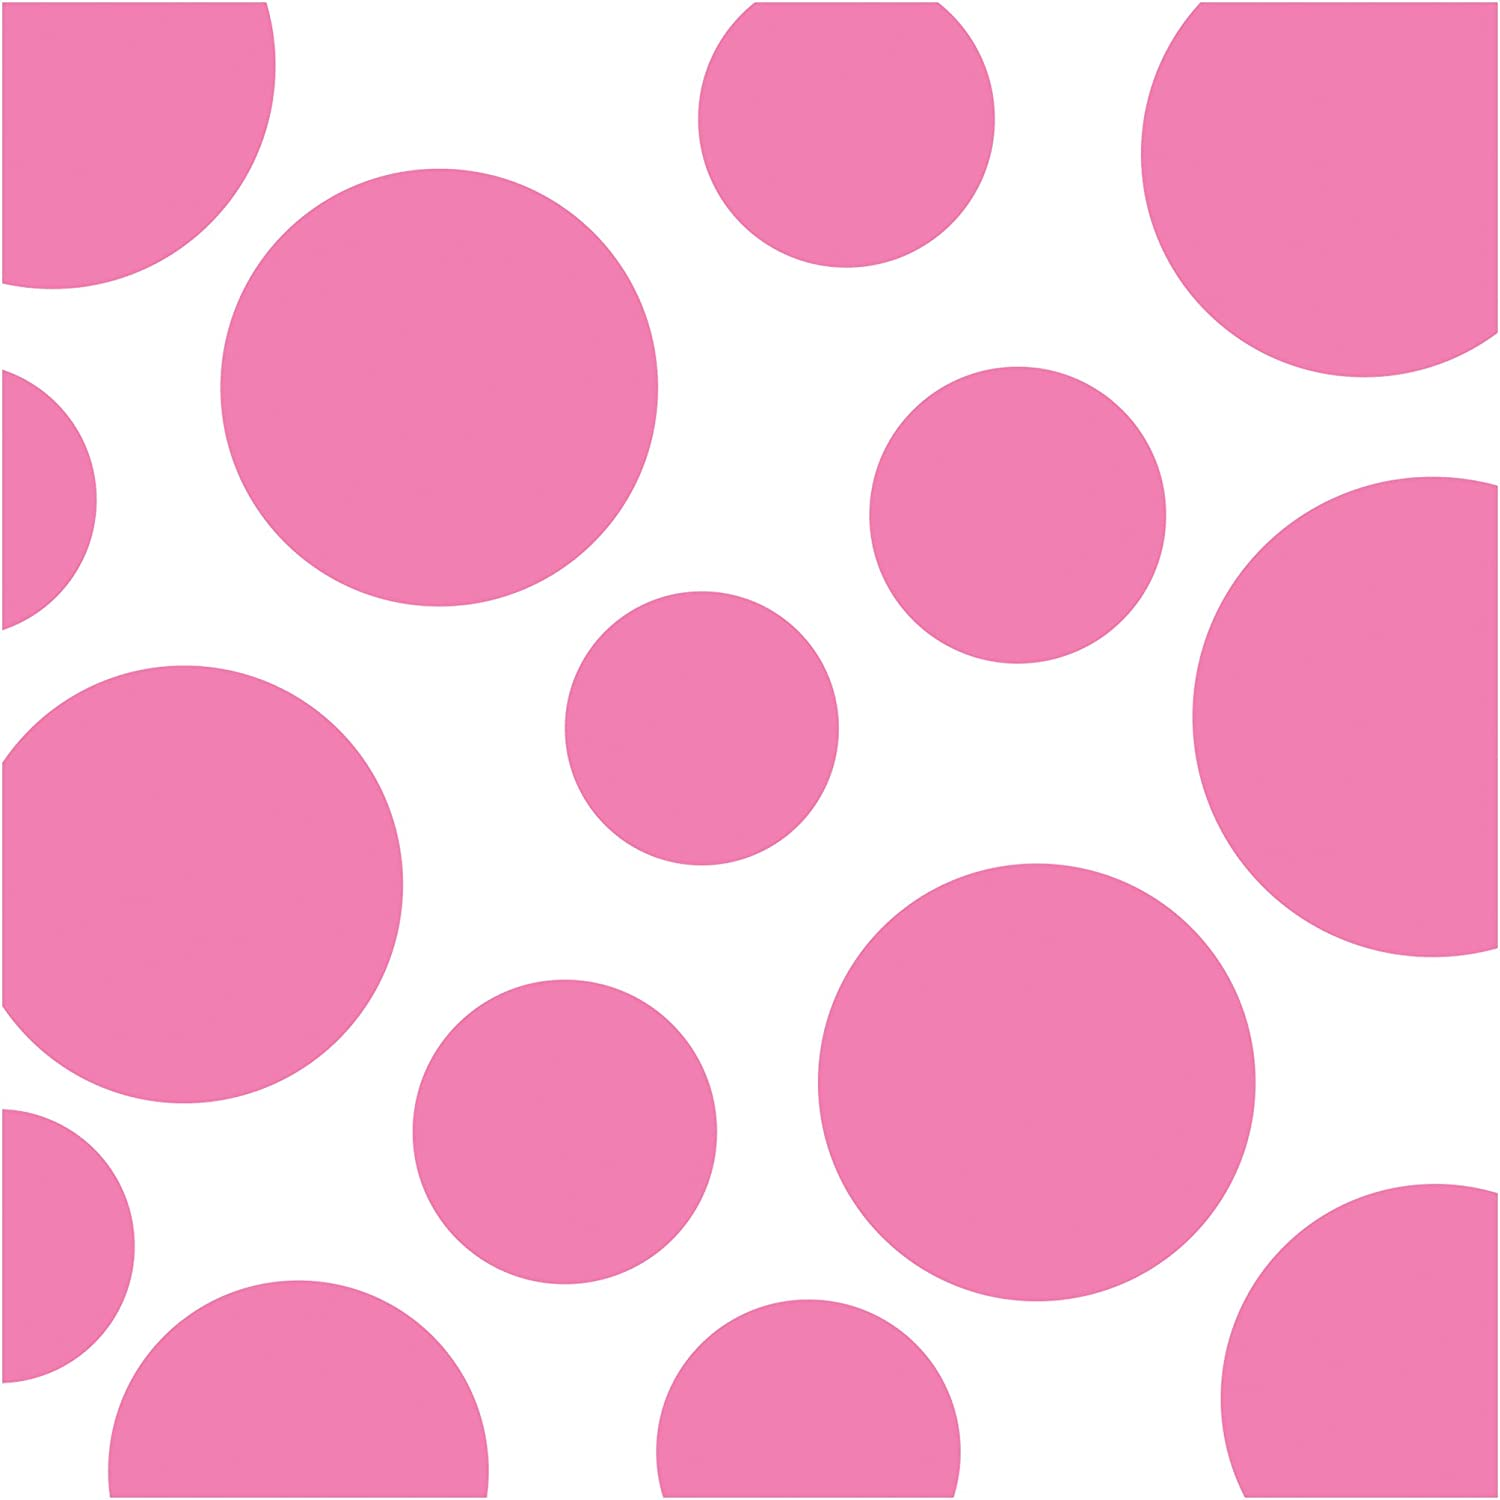 Creative Converting Celebrations 16 Count Chevron and Polka Dots Beverage Napkins, Candy Pink